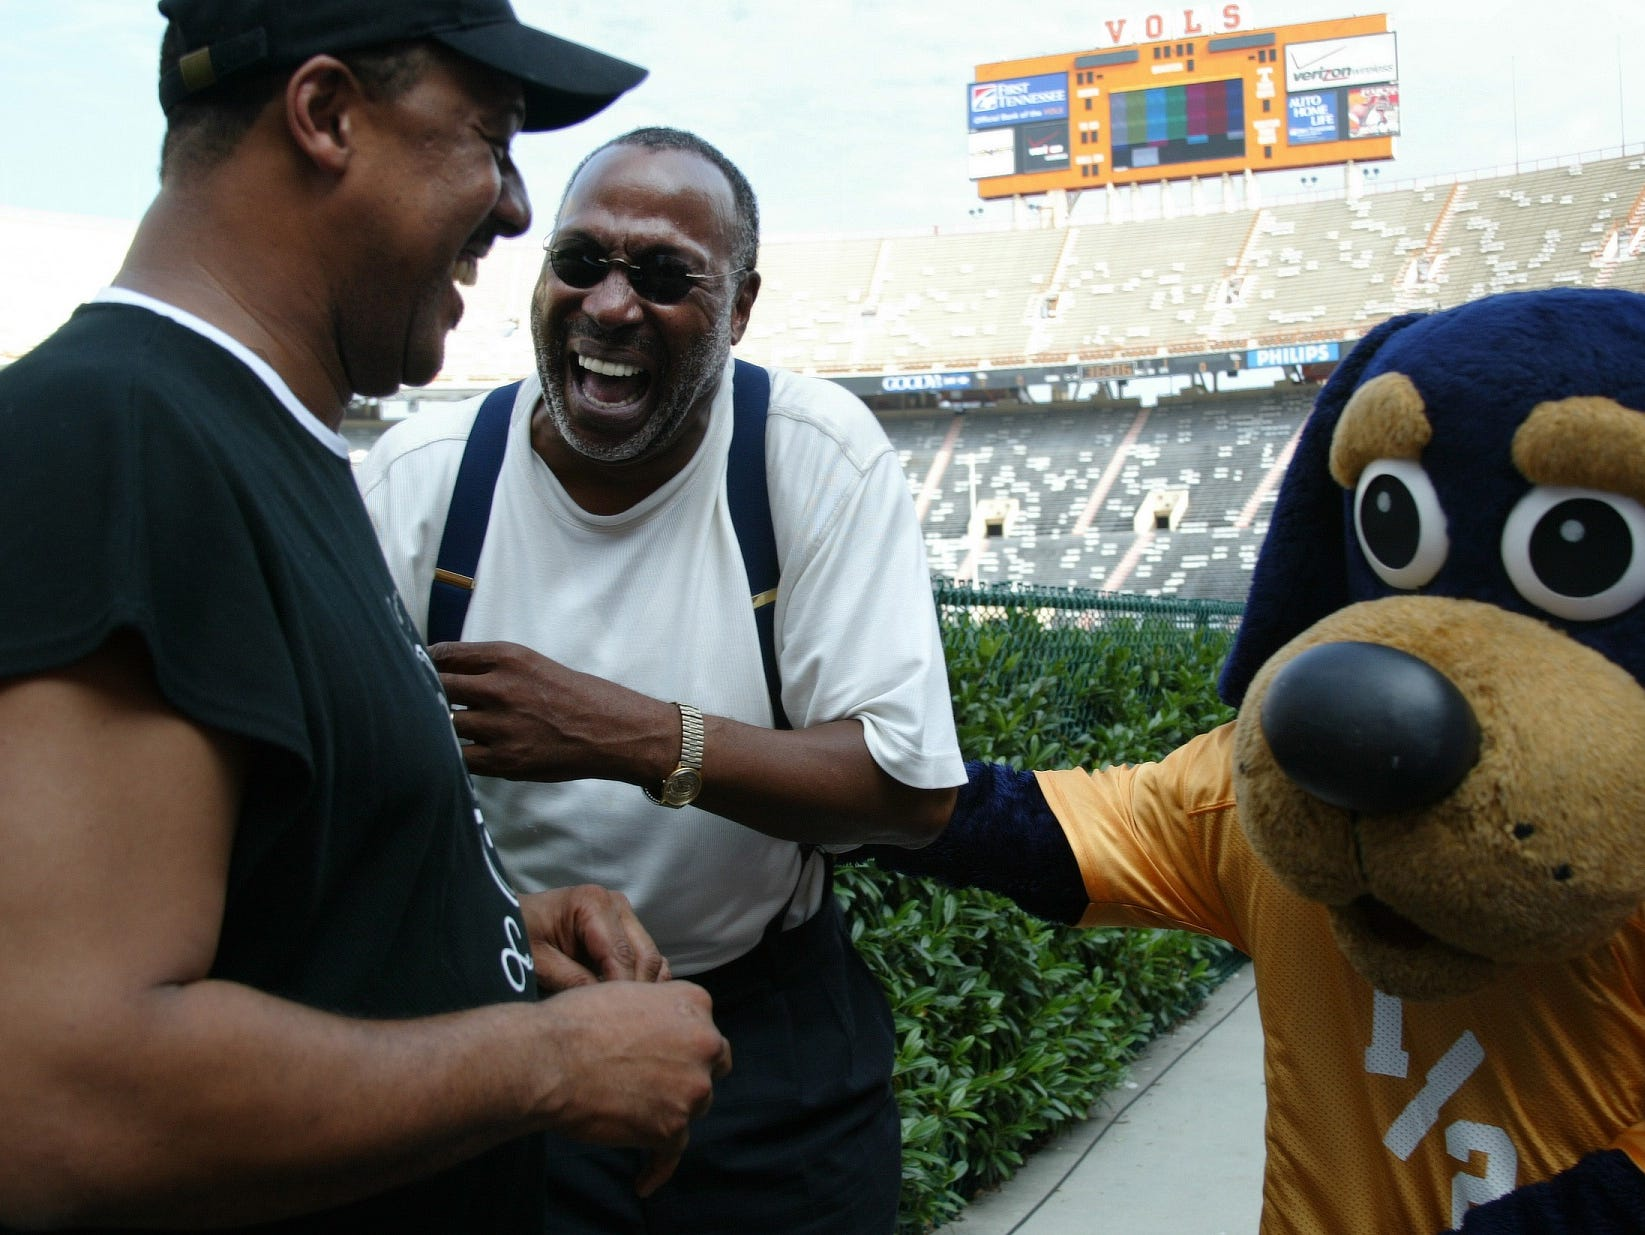 Former Tennessee players Wilbert Jones, left, a defensive back who lettered in 1978-80, and Lester McClain, a wingback who lettered from 1968-70, share a laugh with a UT mascot on Saturday at Neyland Stadium. The two are attending UT's first annual Letterman's Reunion  being held this weekend.